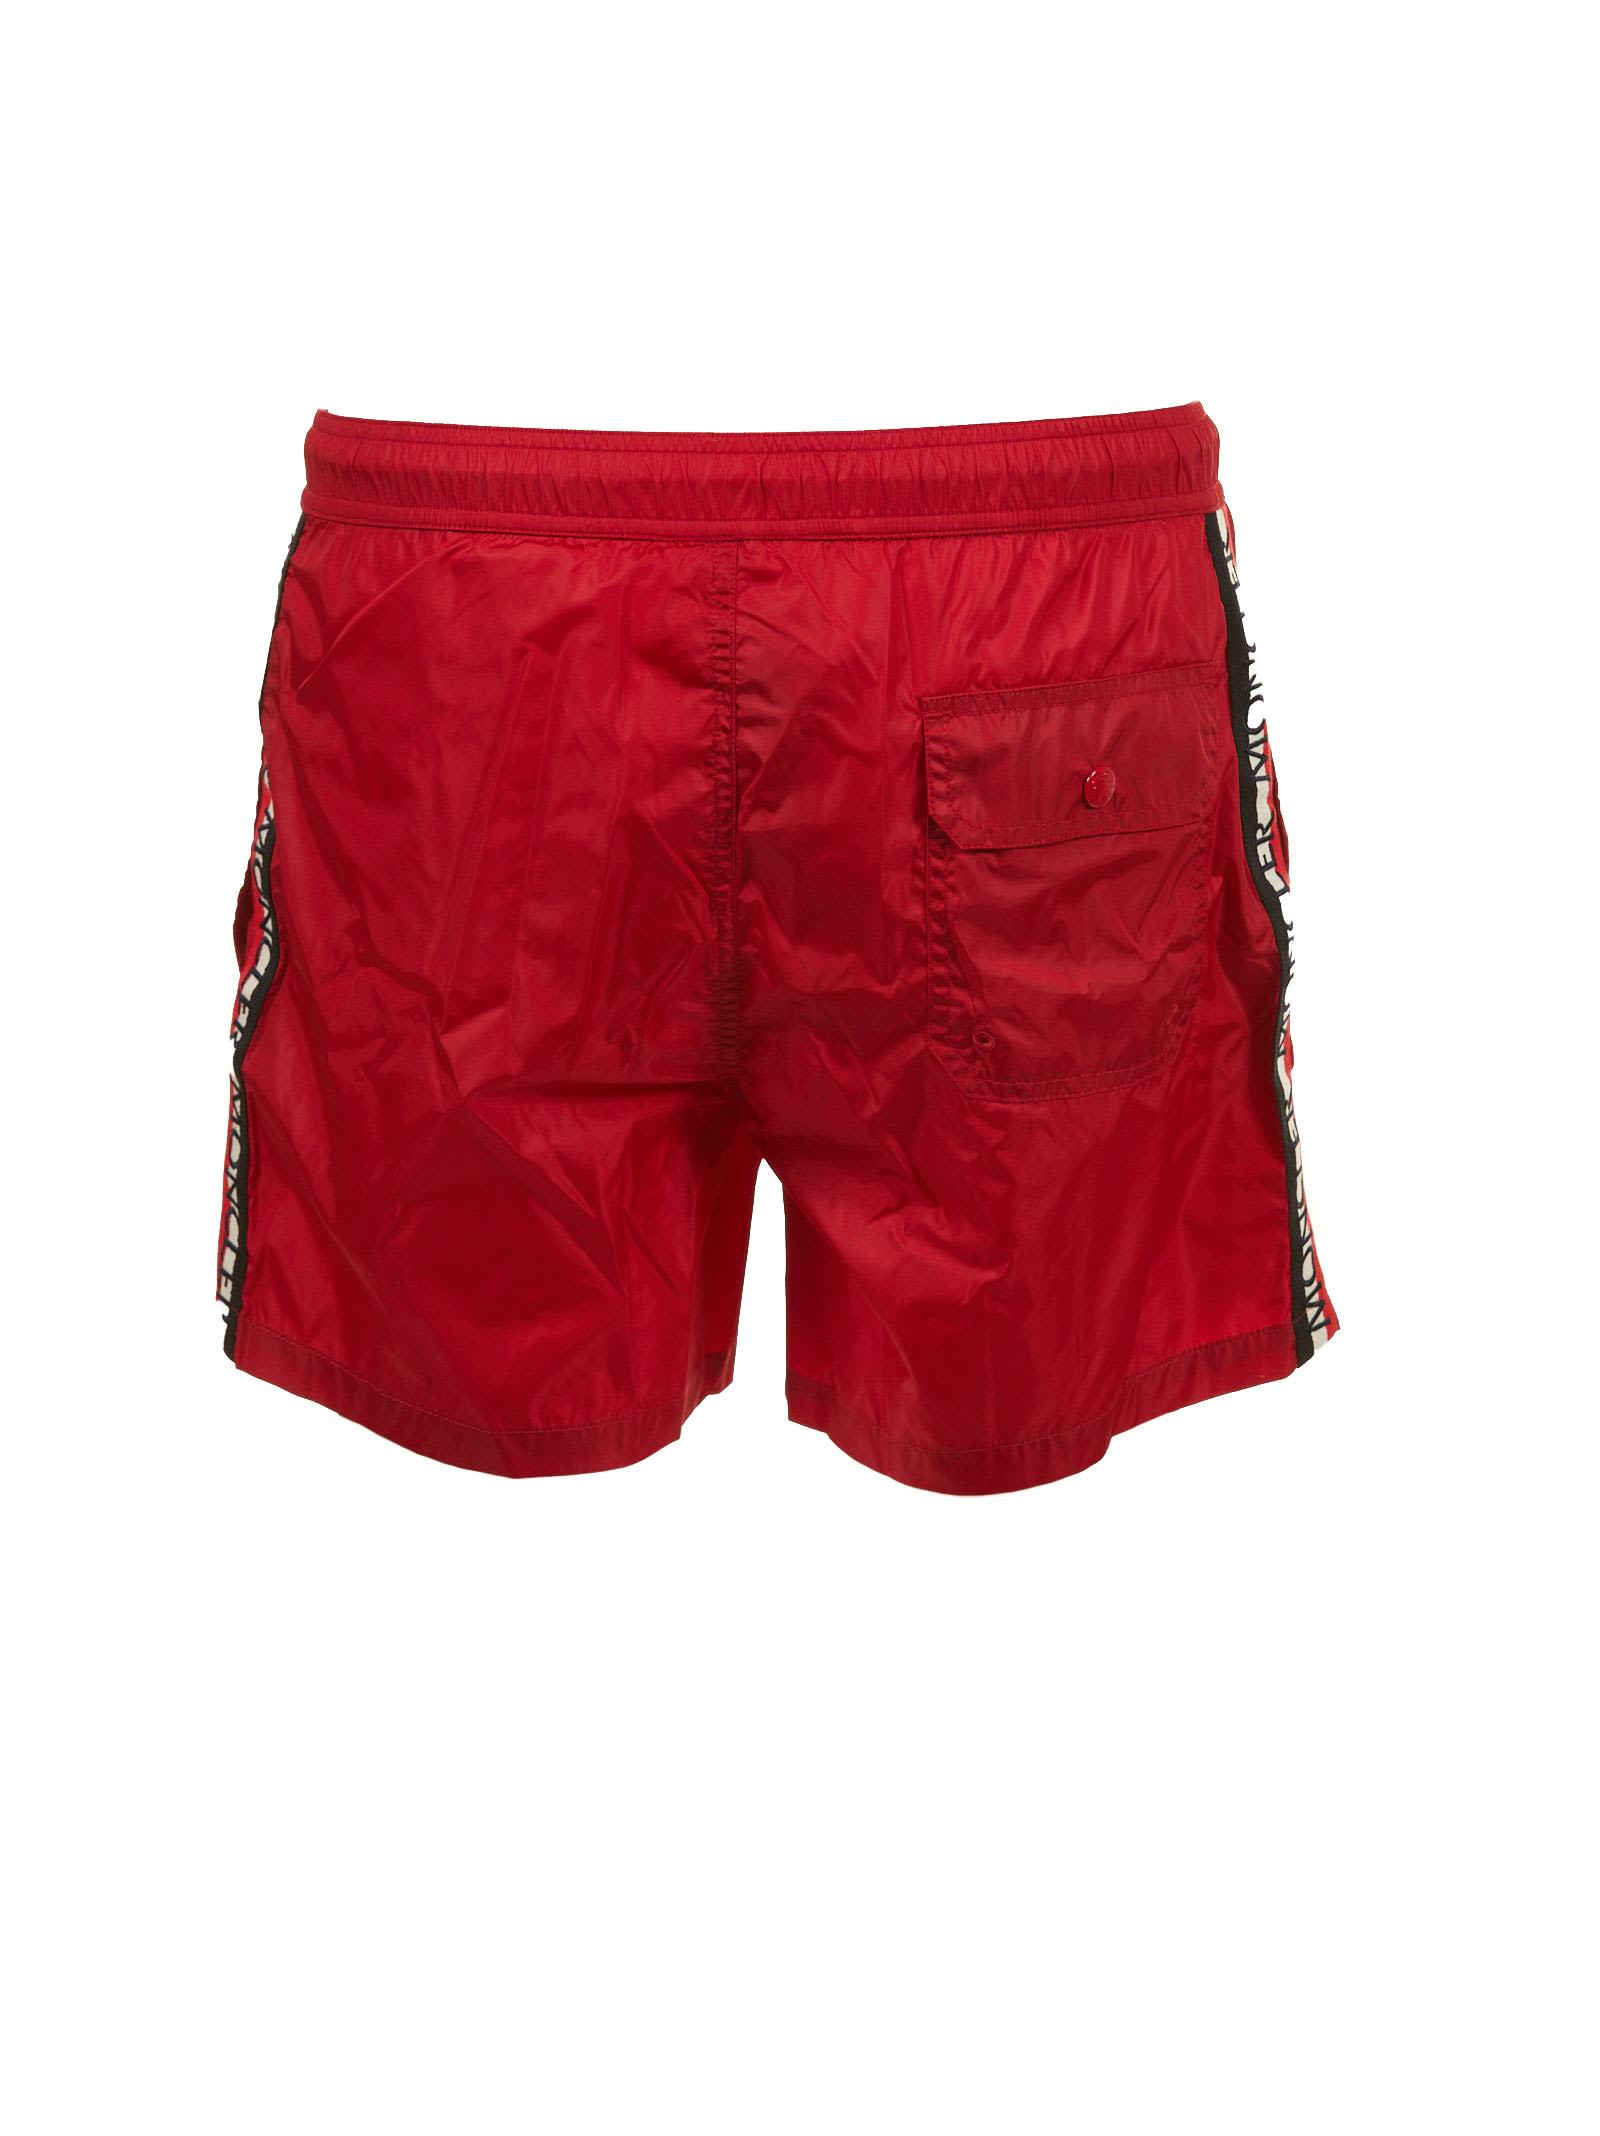 Moncler Side Stripe Swim Shorts Moncler Side Stripe Swim Shorts